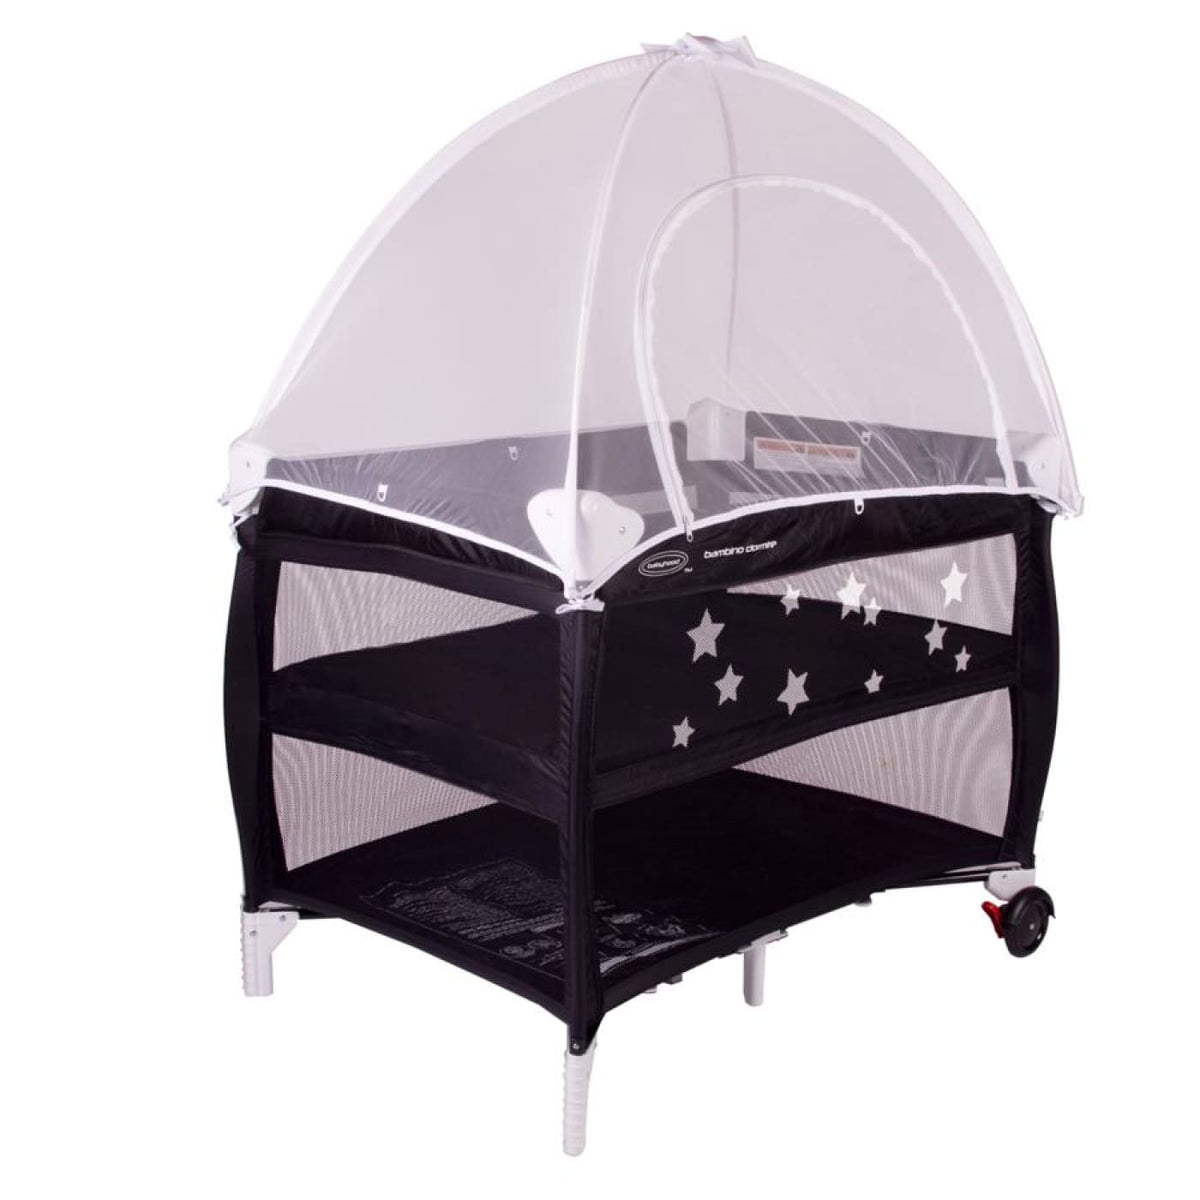 Babyhood PortaCot Canopy Net - White - ON THE GO - PORTACOTS/ACCESSORIES